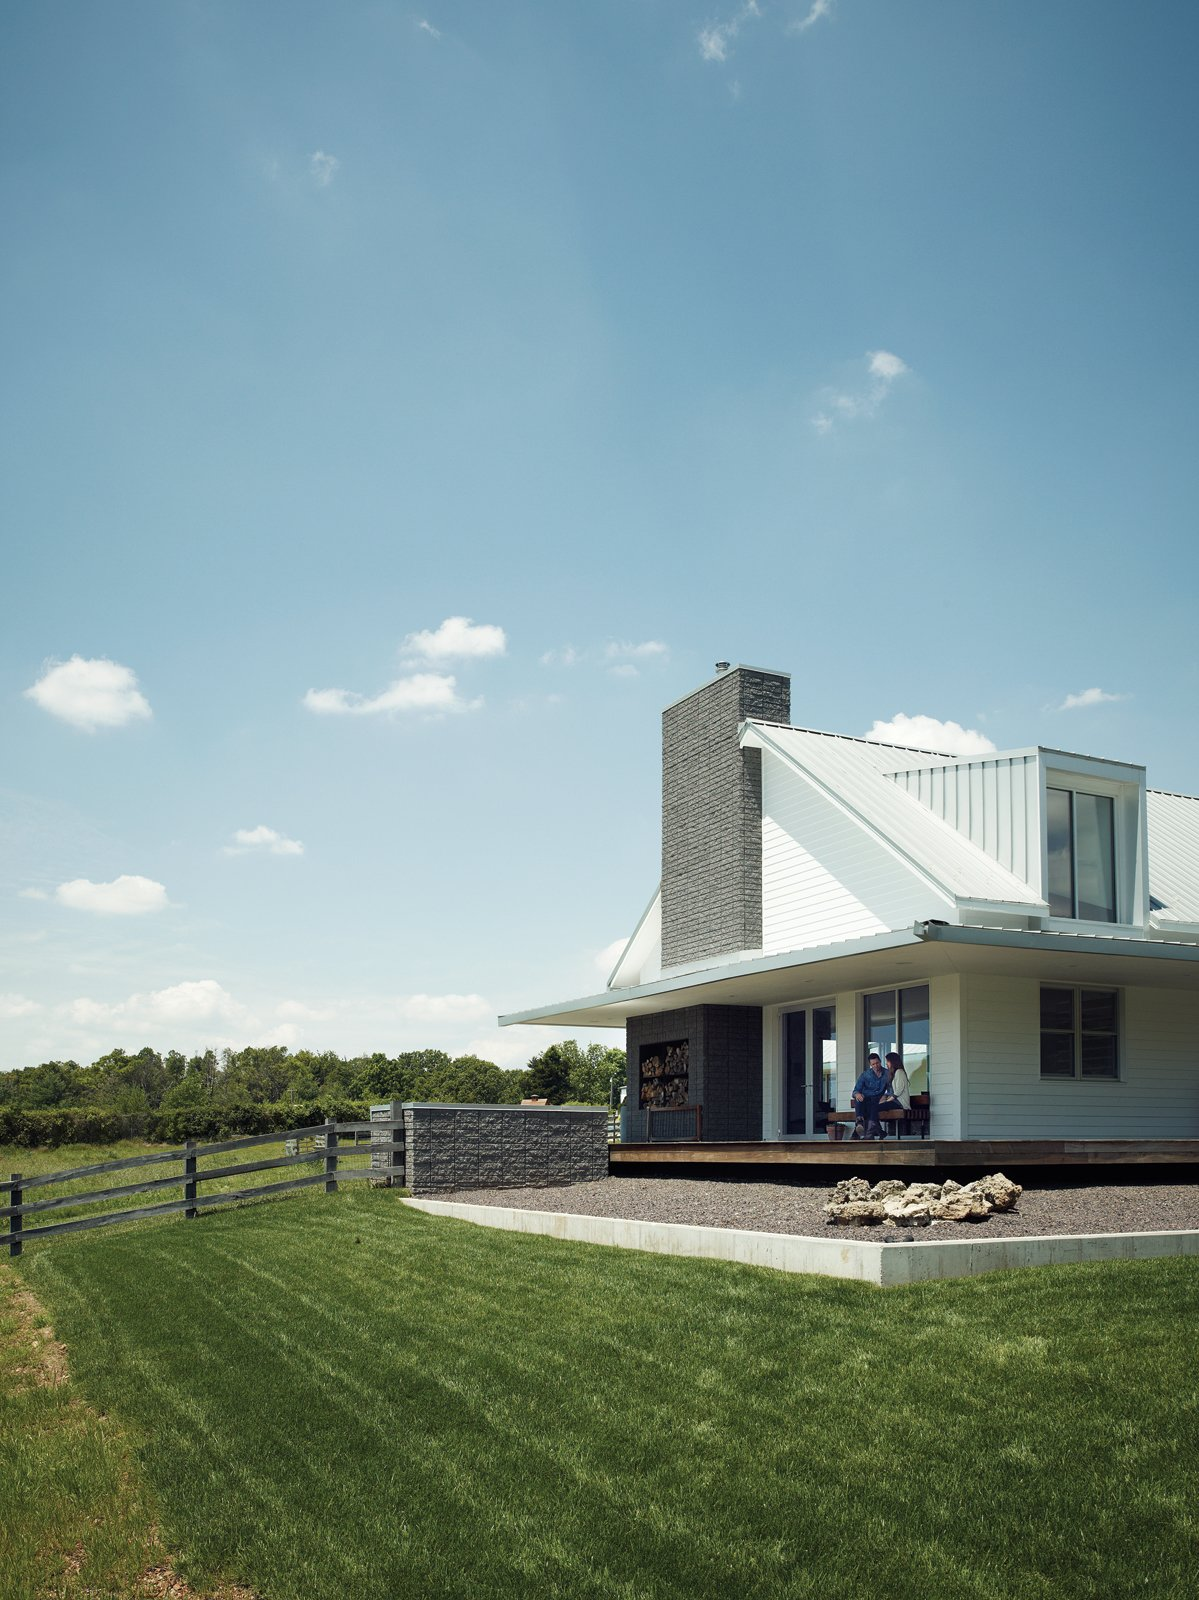 Grass, Large, Wood, Exterior, Metal, Wood, and Farmhouse Located in Springfield, Missouri, this modern farmhouse designed by Kansas-City based firm Hufft Projects exudes the traditional vernacular of Kansas with an updated take on the conventional form. The rolling hills and expansive land resemble the tone of quaint Marquette.  Exterior Wood Large Photos from A Modern Farmhouse Recalls Old-Time Americana